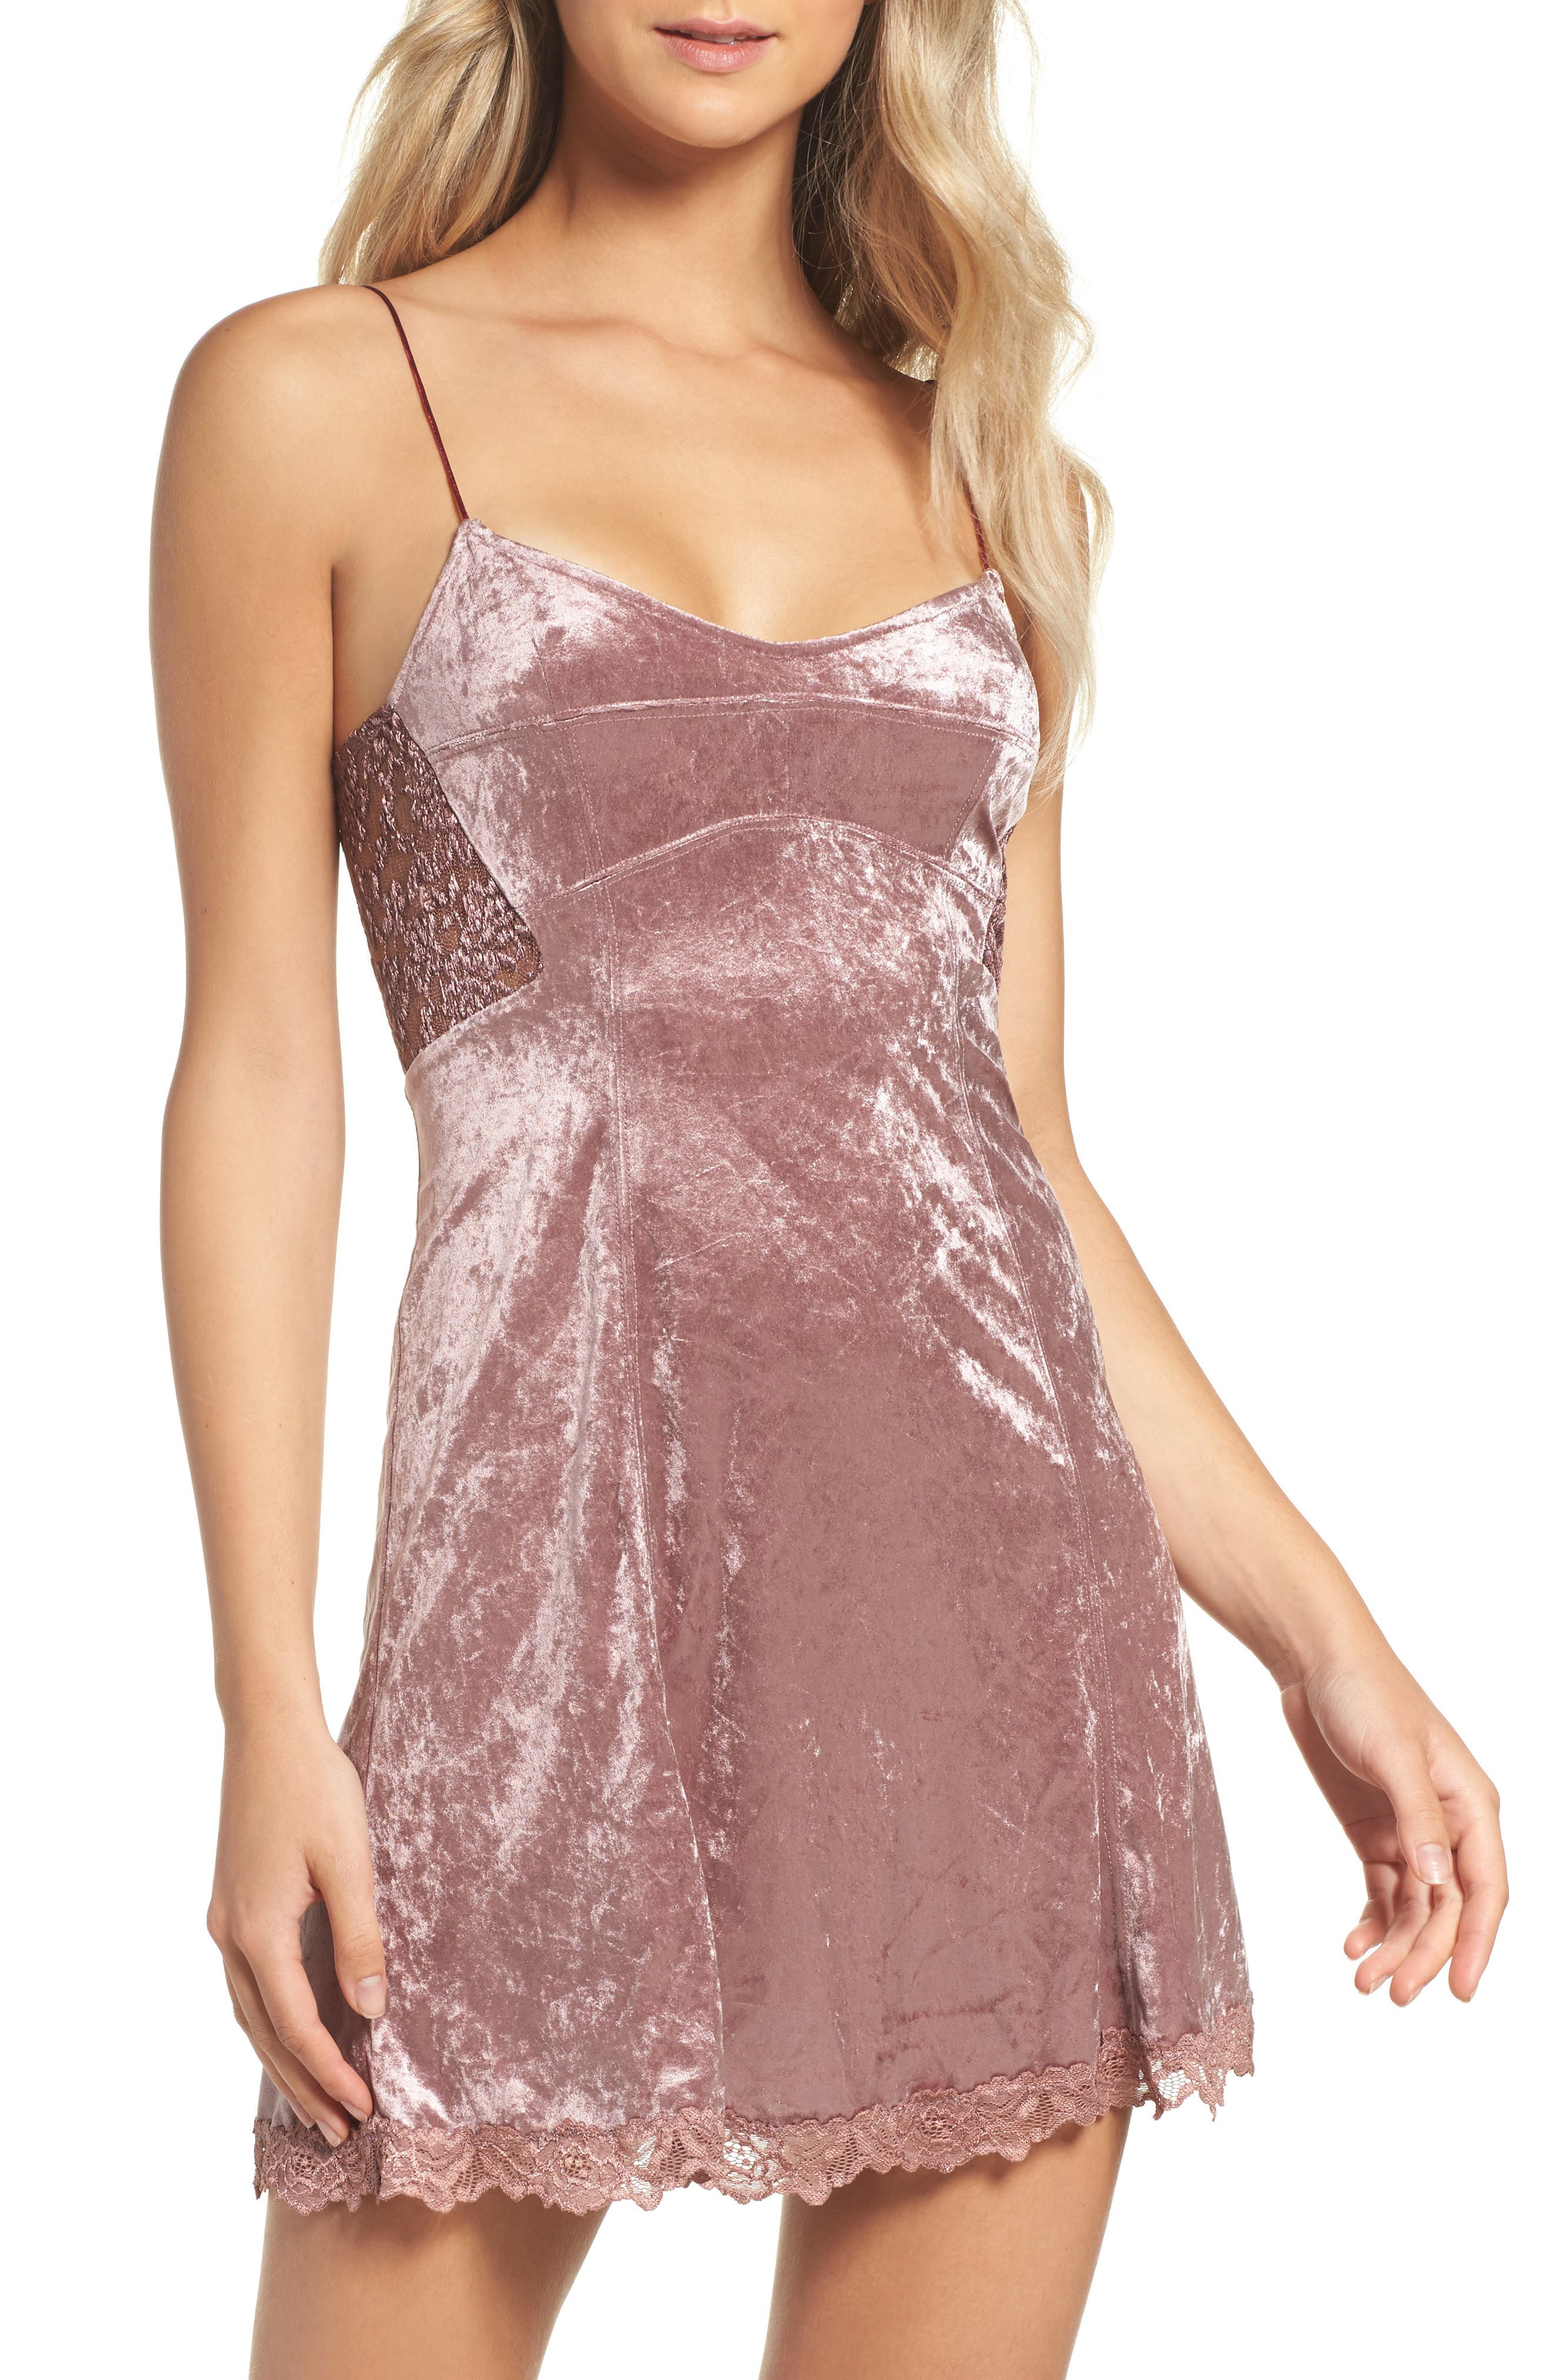 Intimately FP Velvet Chemise,                             Main thumbnail 1, color,                             Mauve